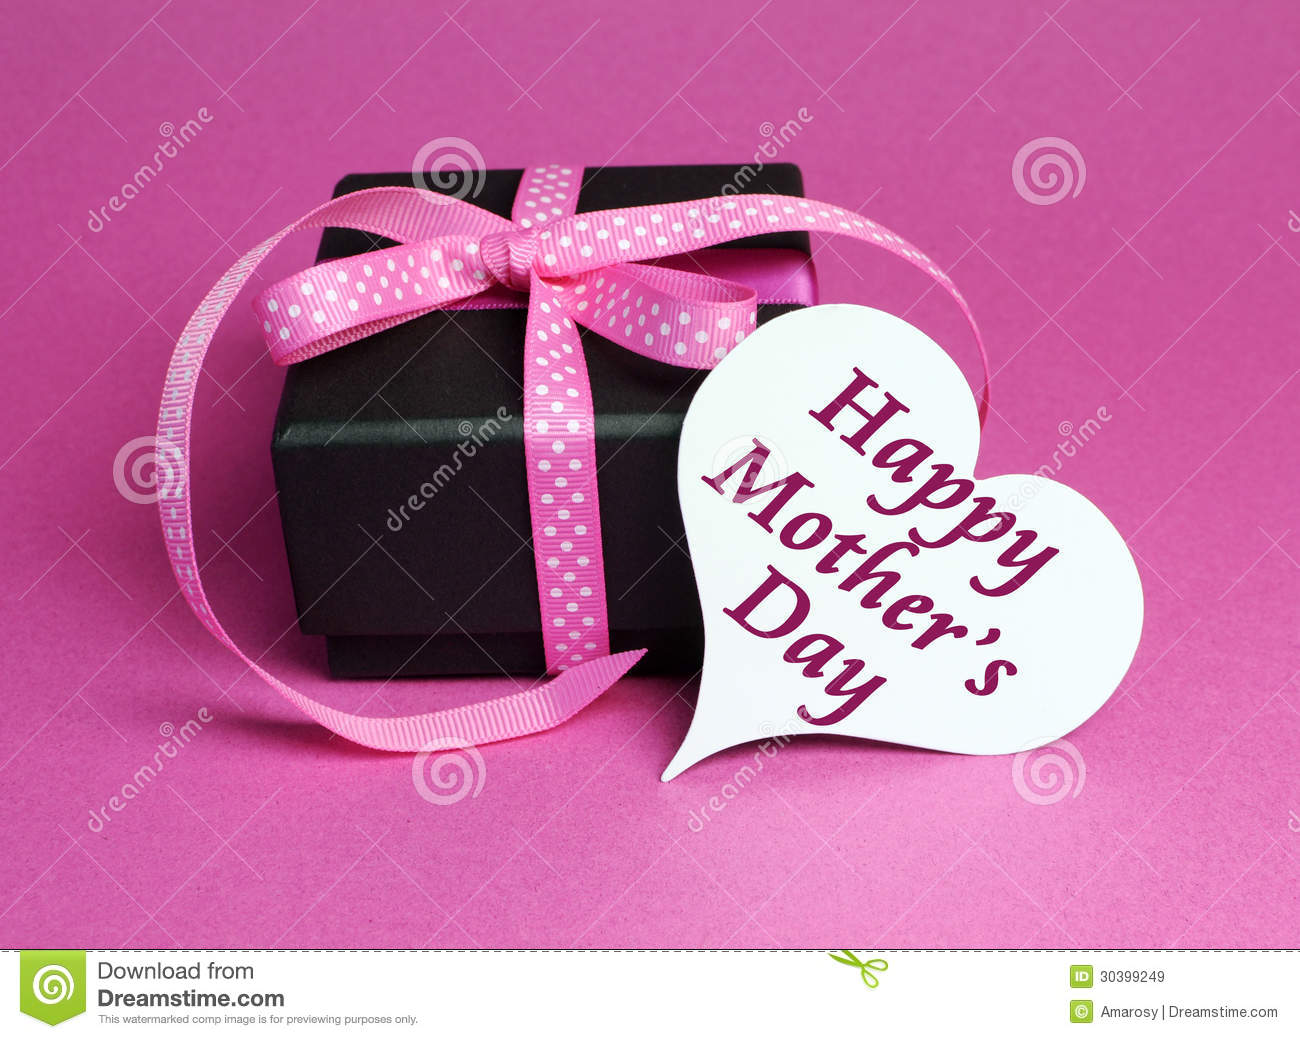 Gift with pink polka dot ribbon and white heart shape gift tag with Happy Mothers Day